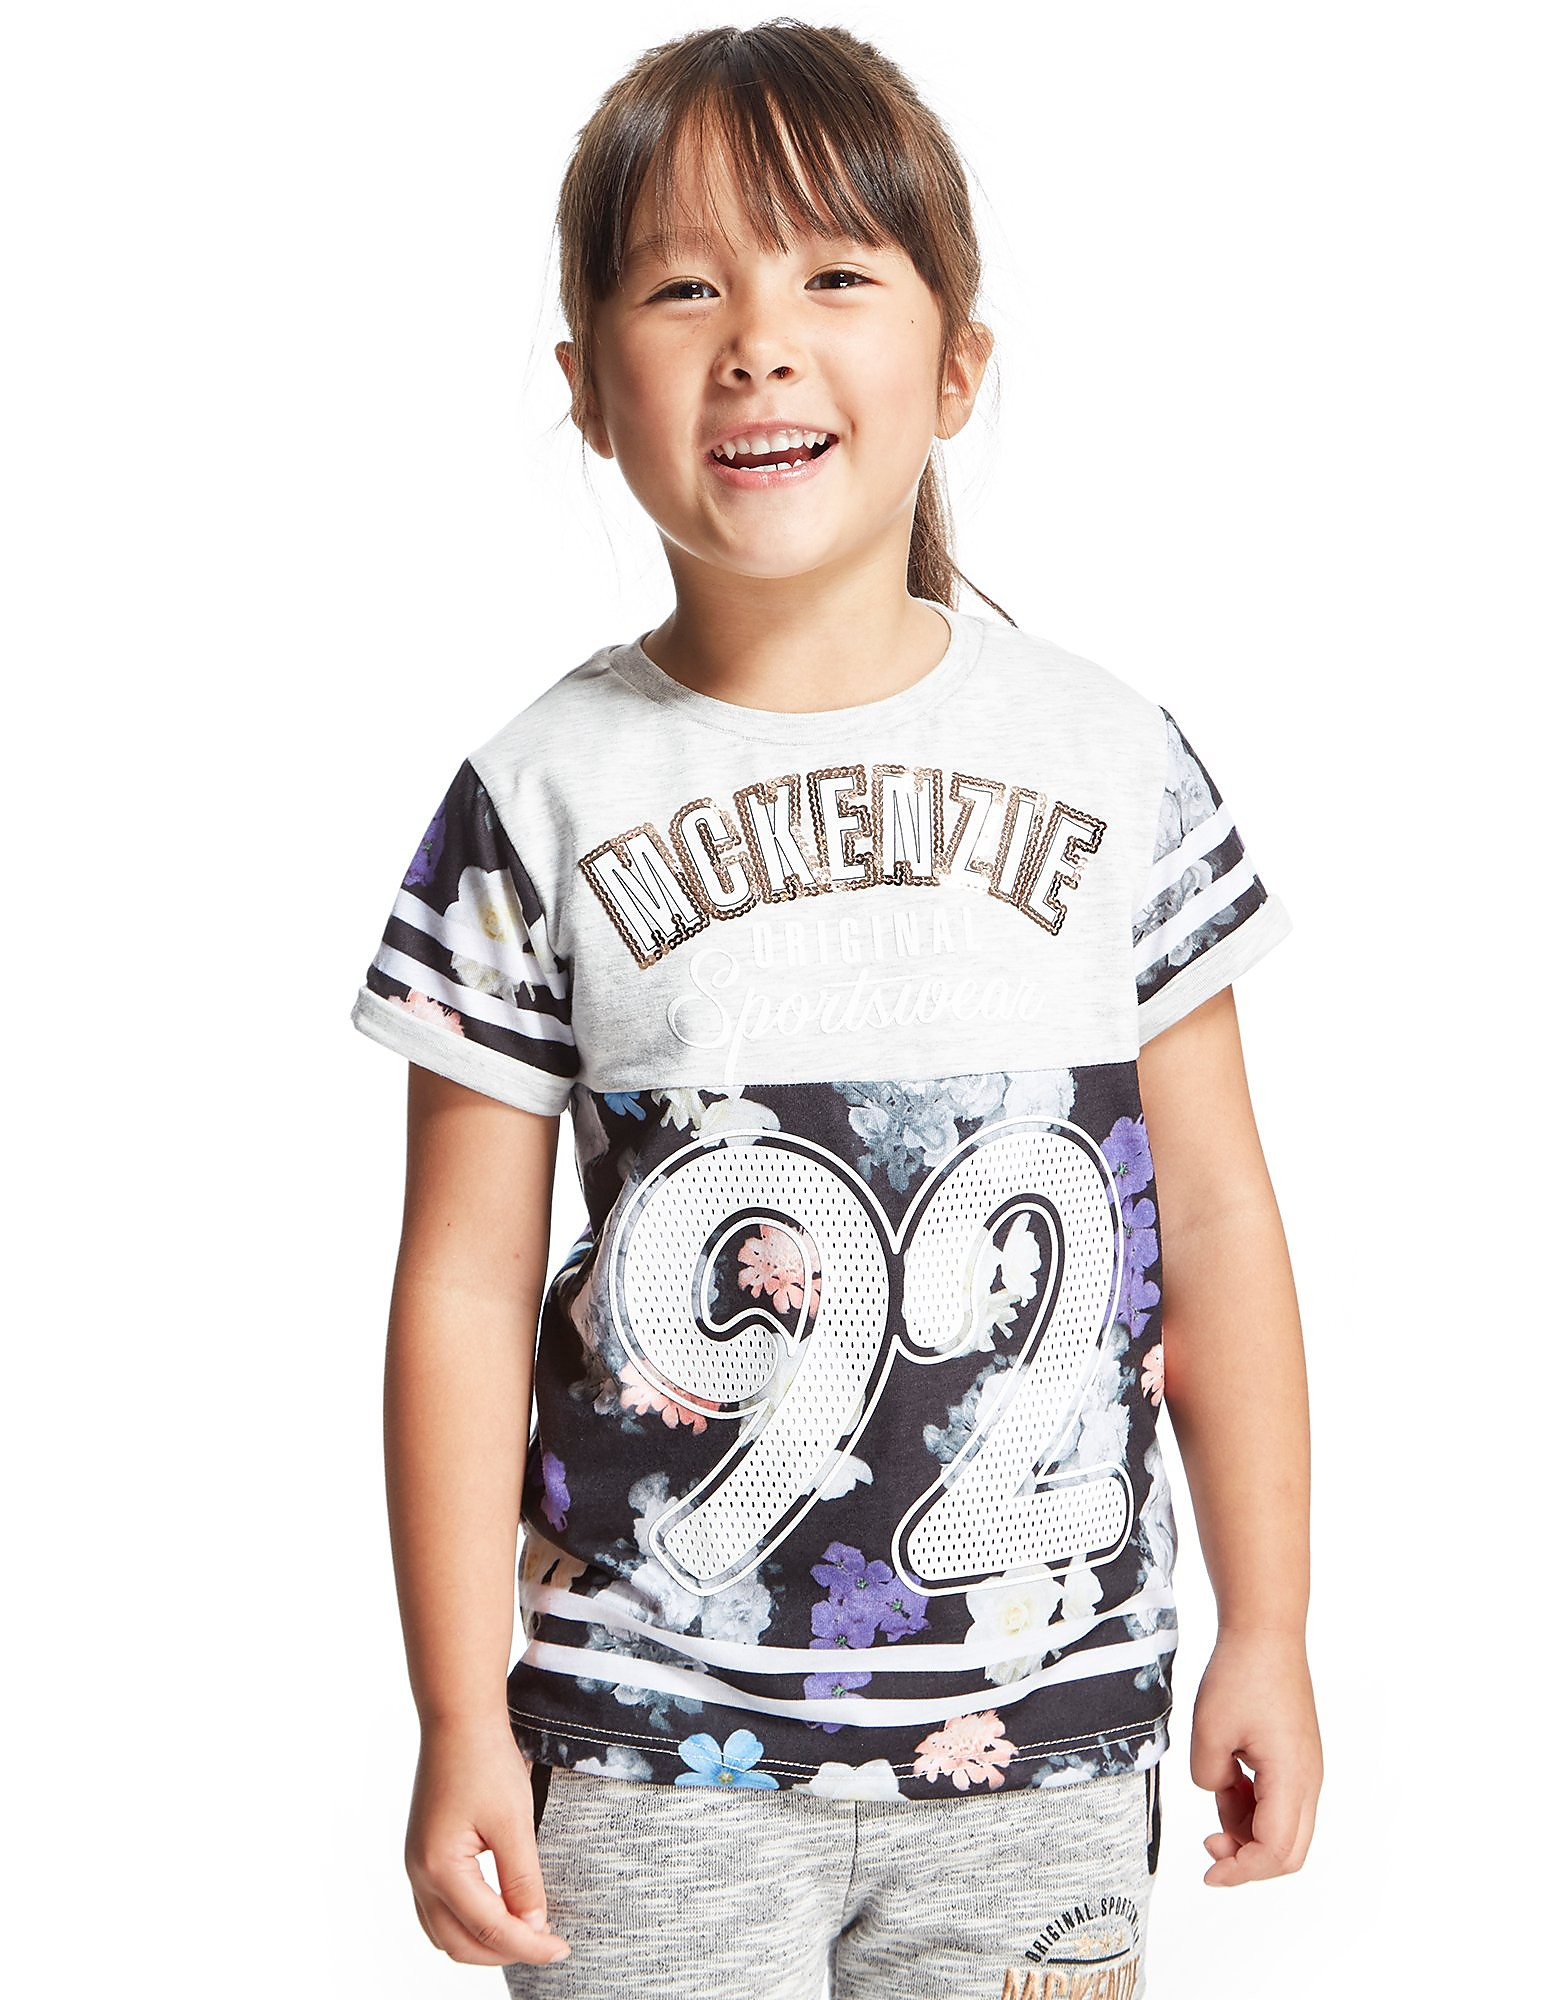 McKenzie Tatiana T-Shirt Children